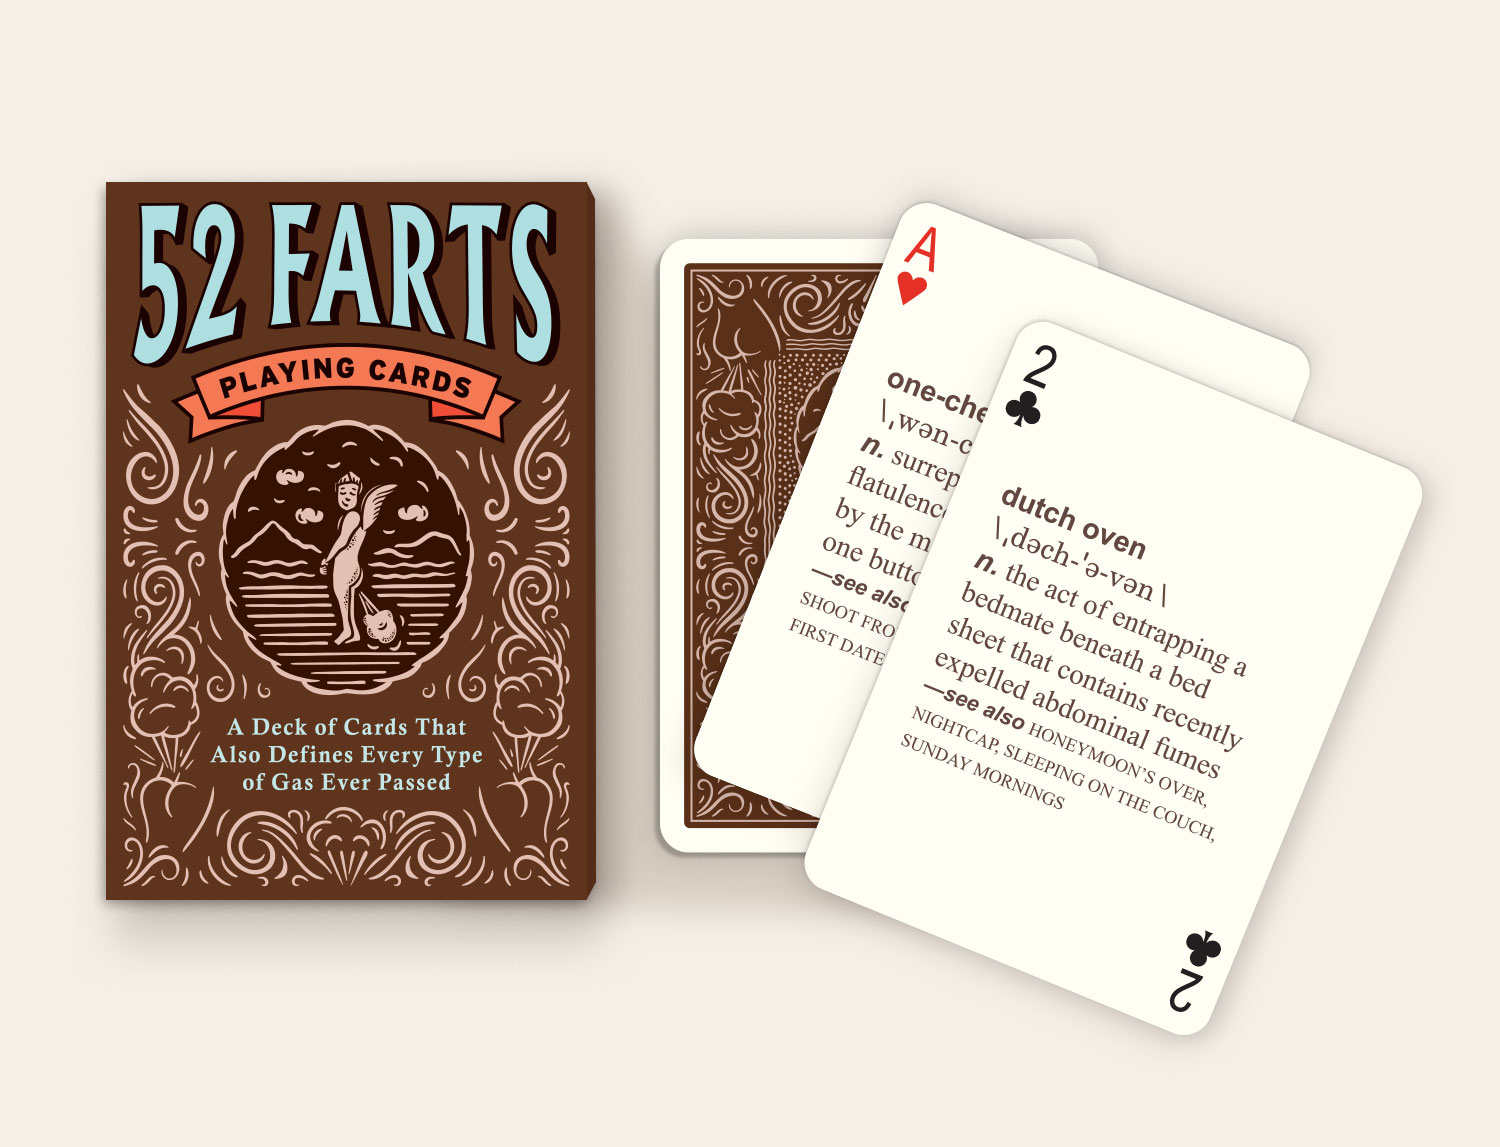 Knock Knock 52 Farts Playing Cards for Adults Card Games